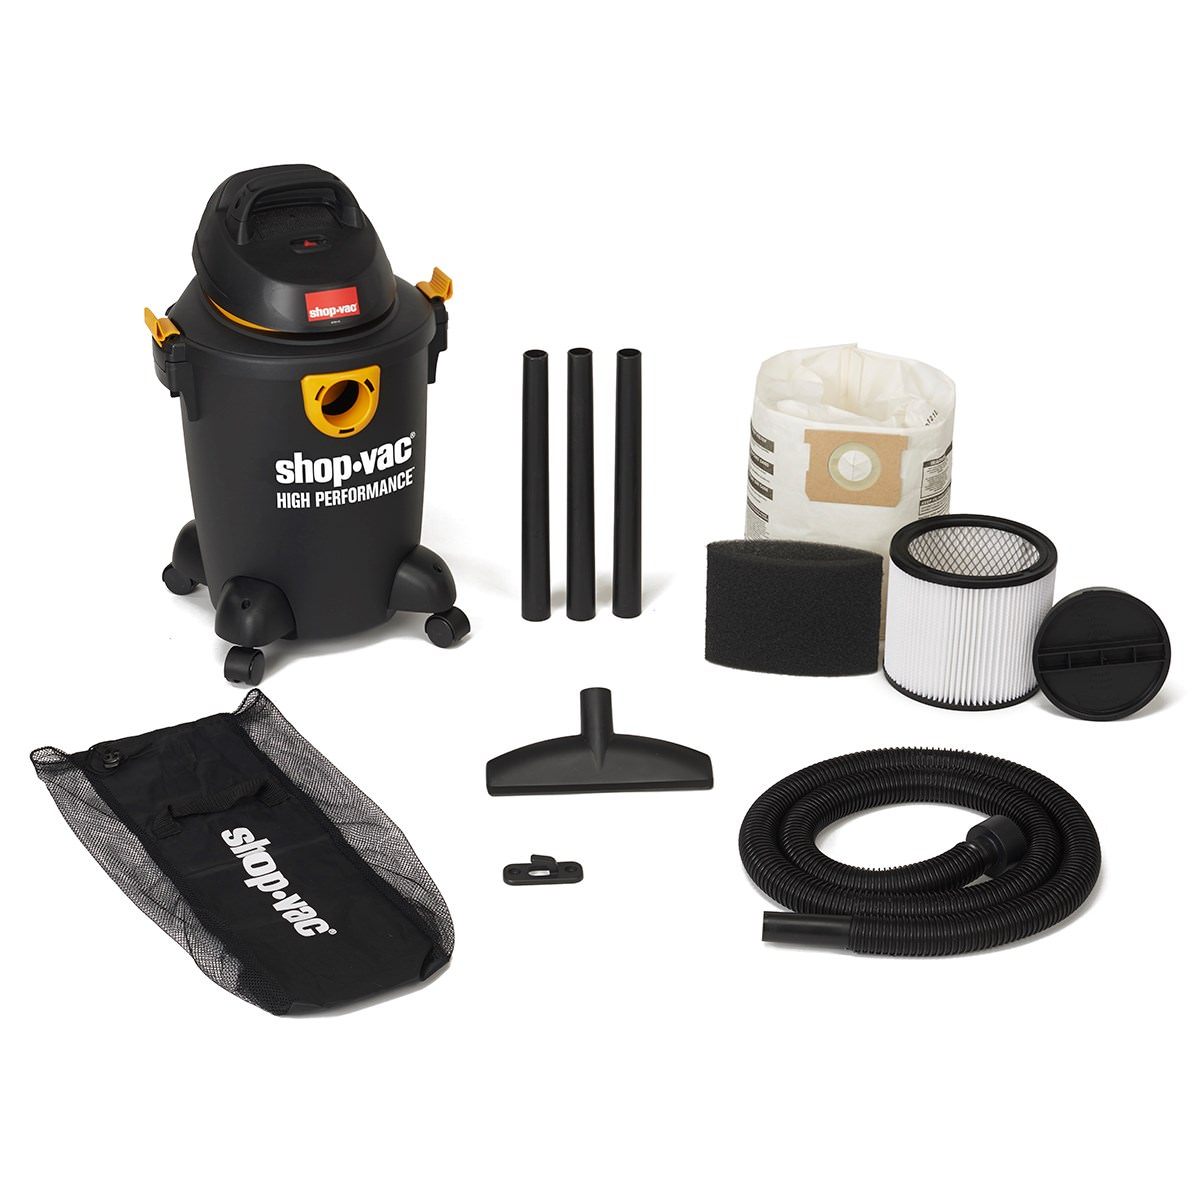 Shop-Vac 6 Gallon 3.5 Peak HP High Performance Wet / Dry Vacuum